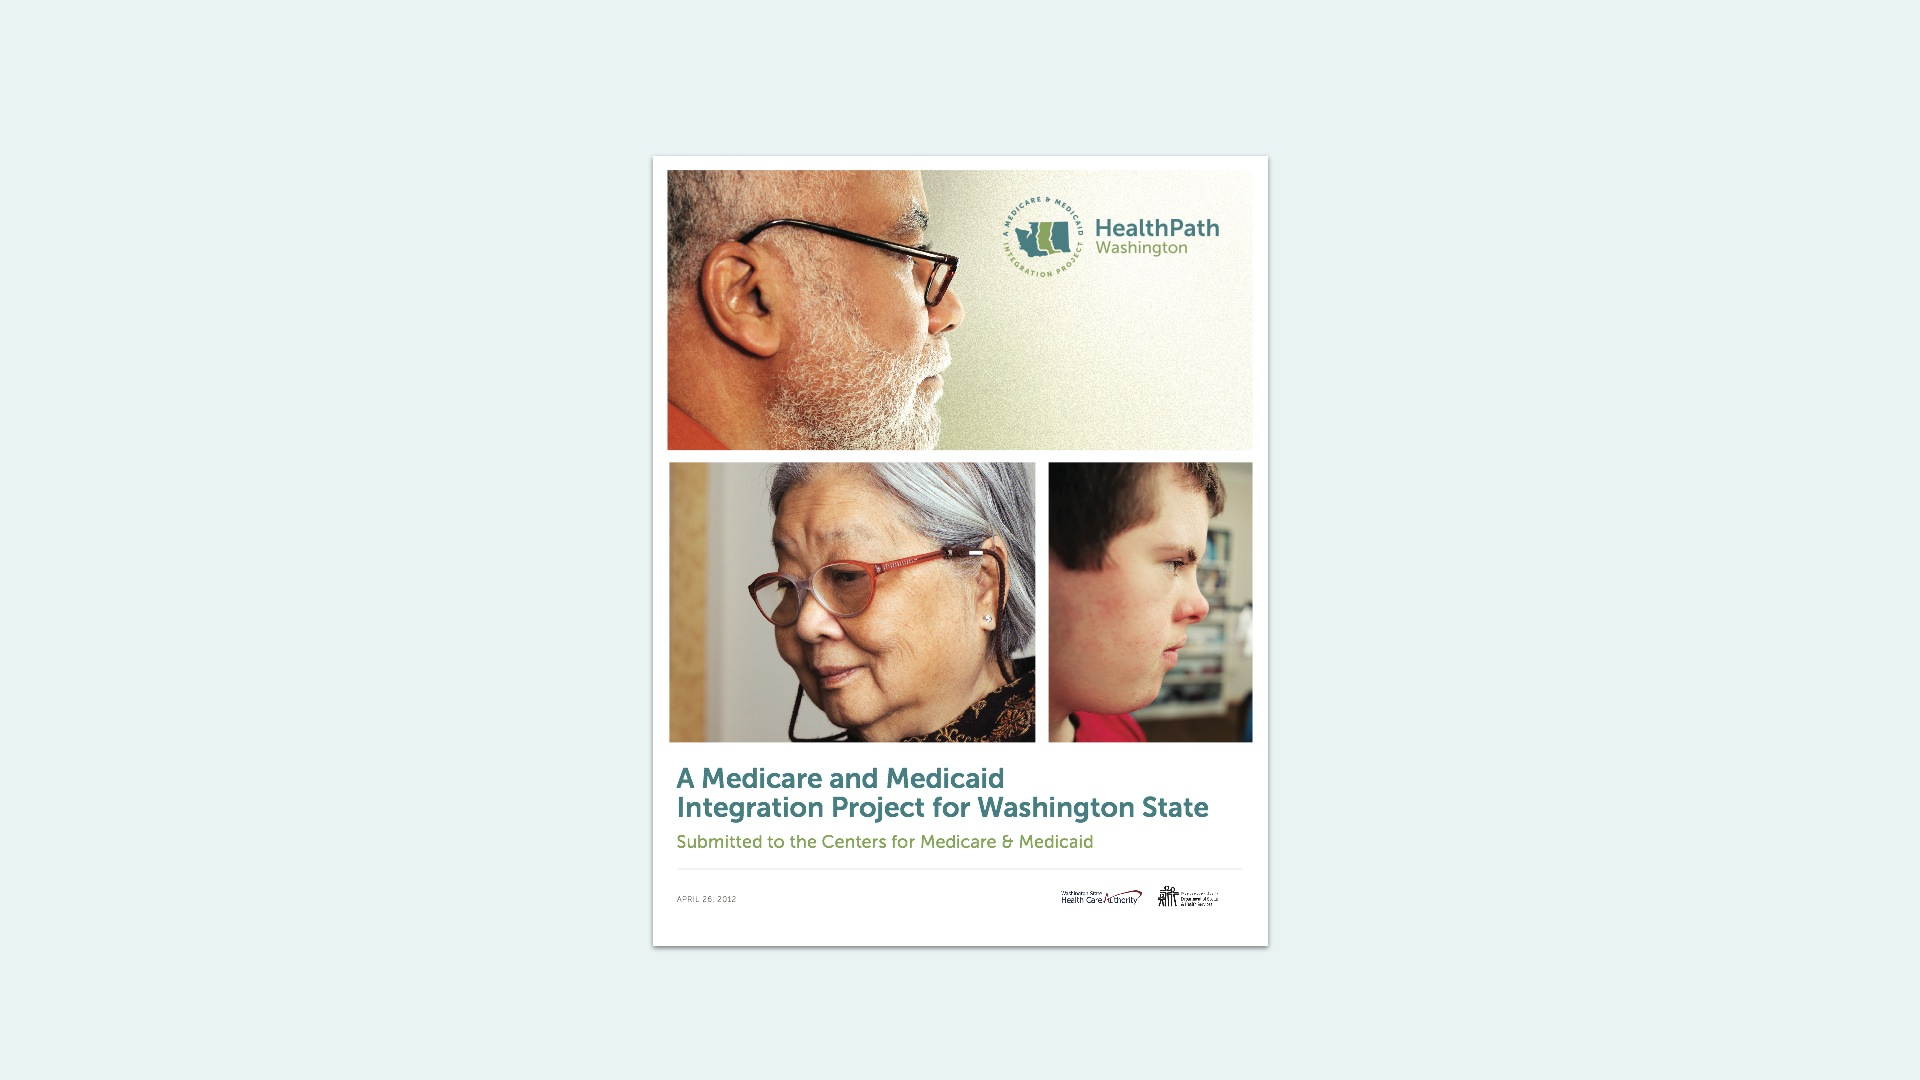 healthpath-washington-02